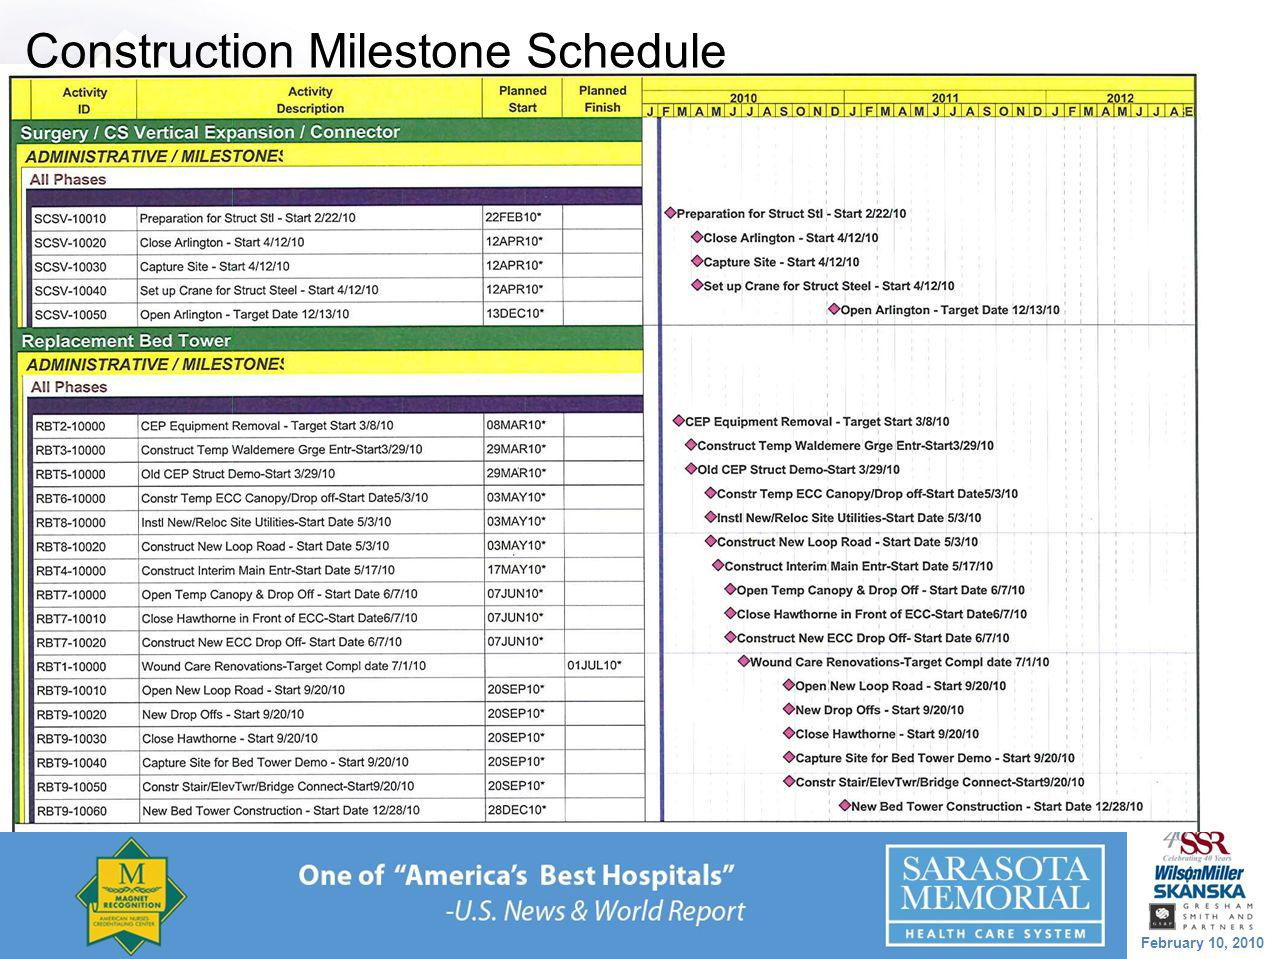 February 10, 2010 Construction Milestone Schedule